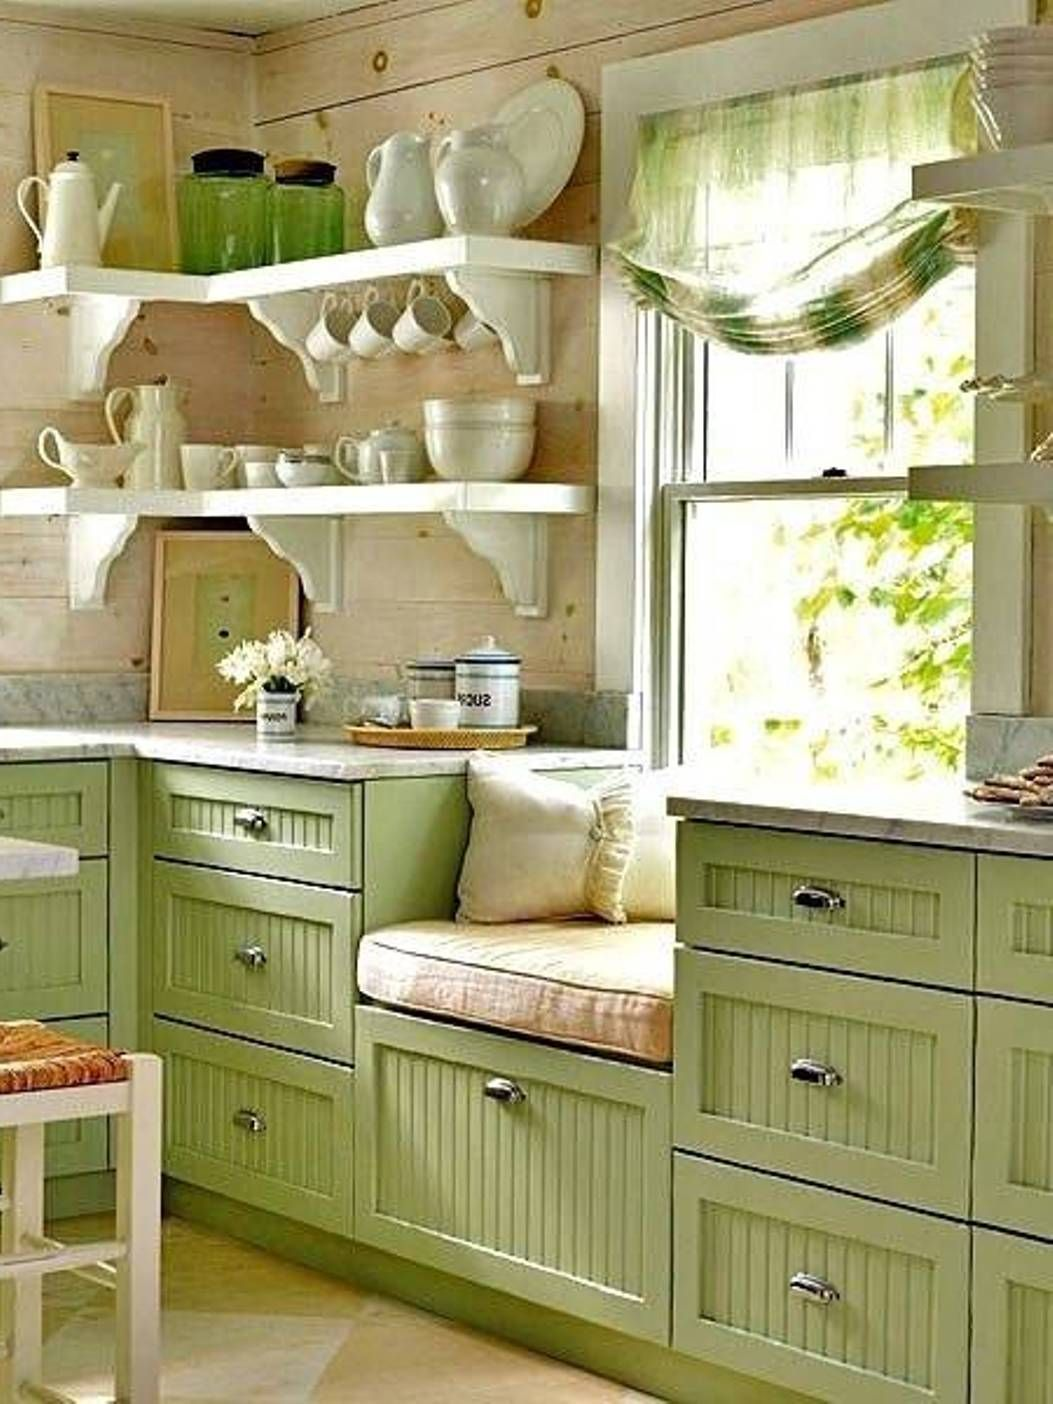 19 Amazing Kitchen Decorating Ideas Cottage Kitchen Design Kitchen Design Small Small Farmhouse Kitchen